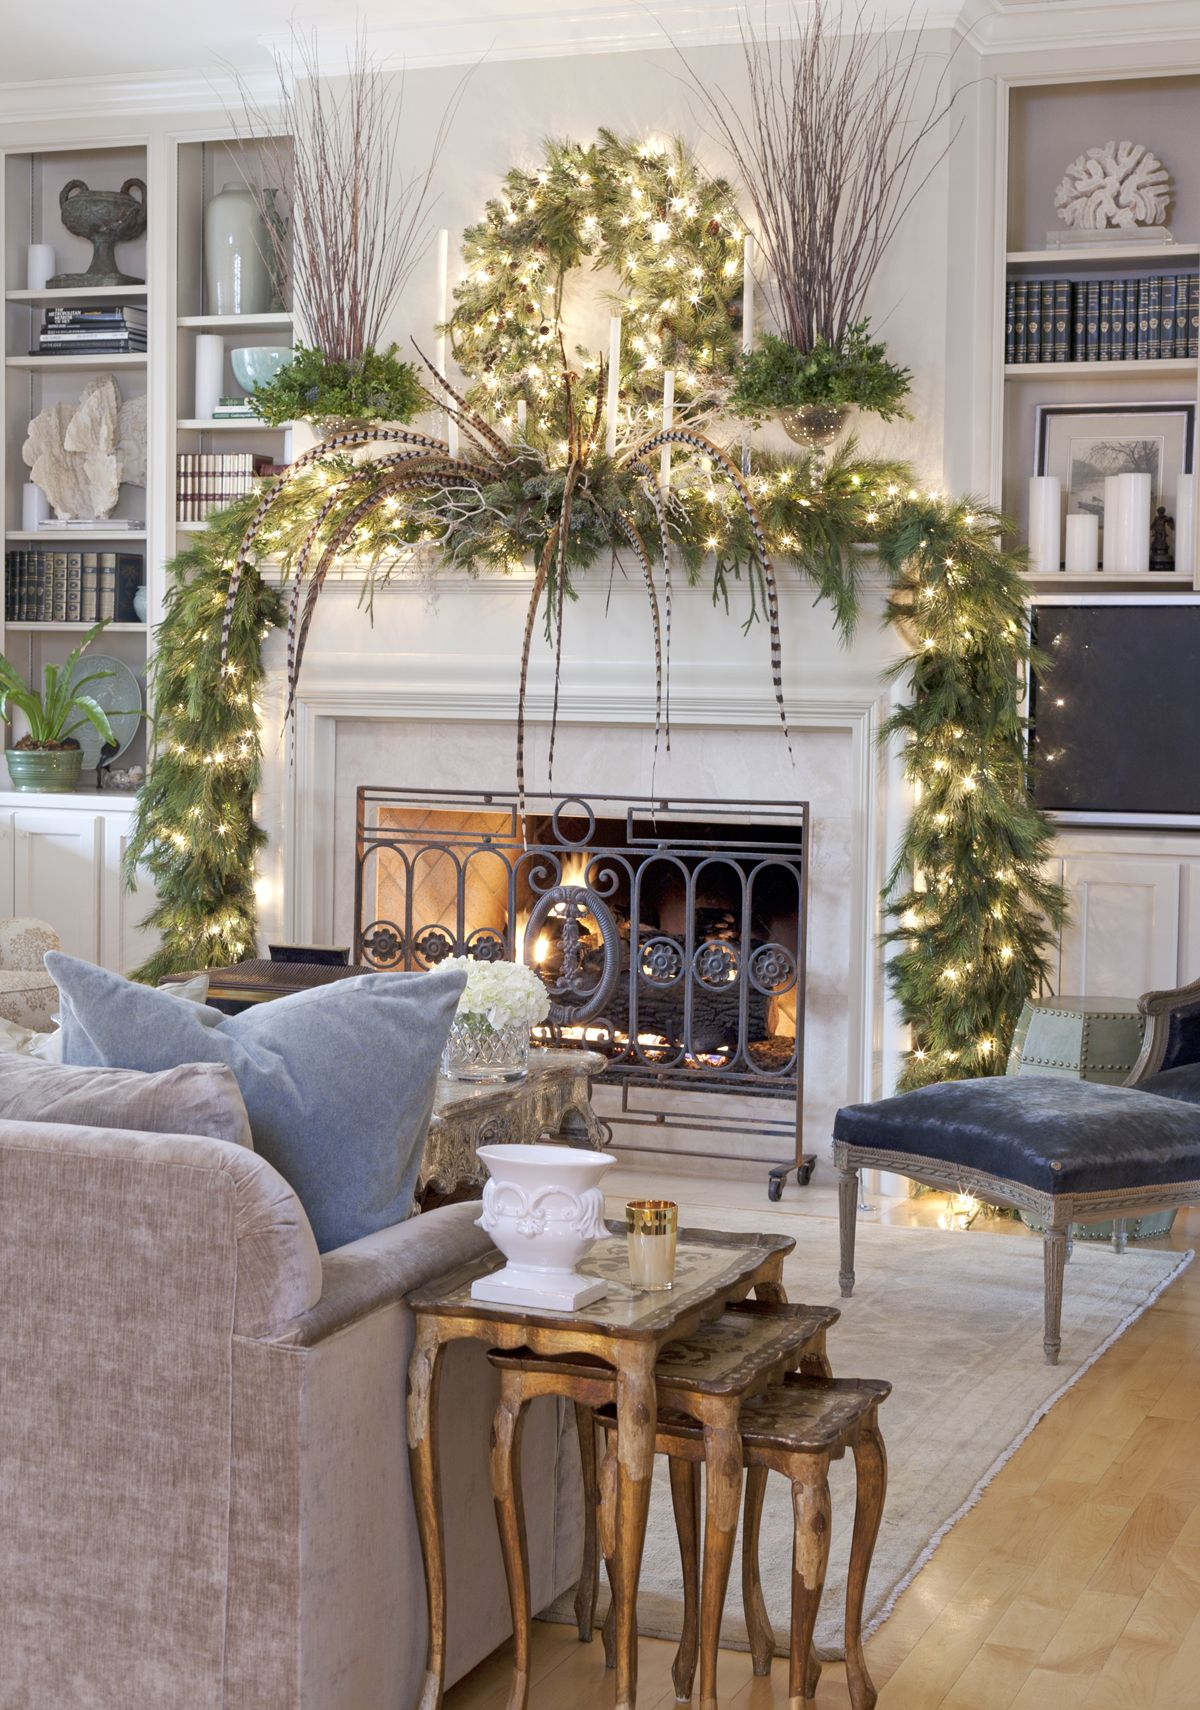 the living room mantle's lush greenery complements the muted baker